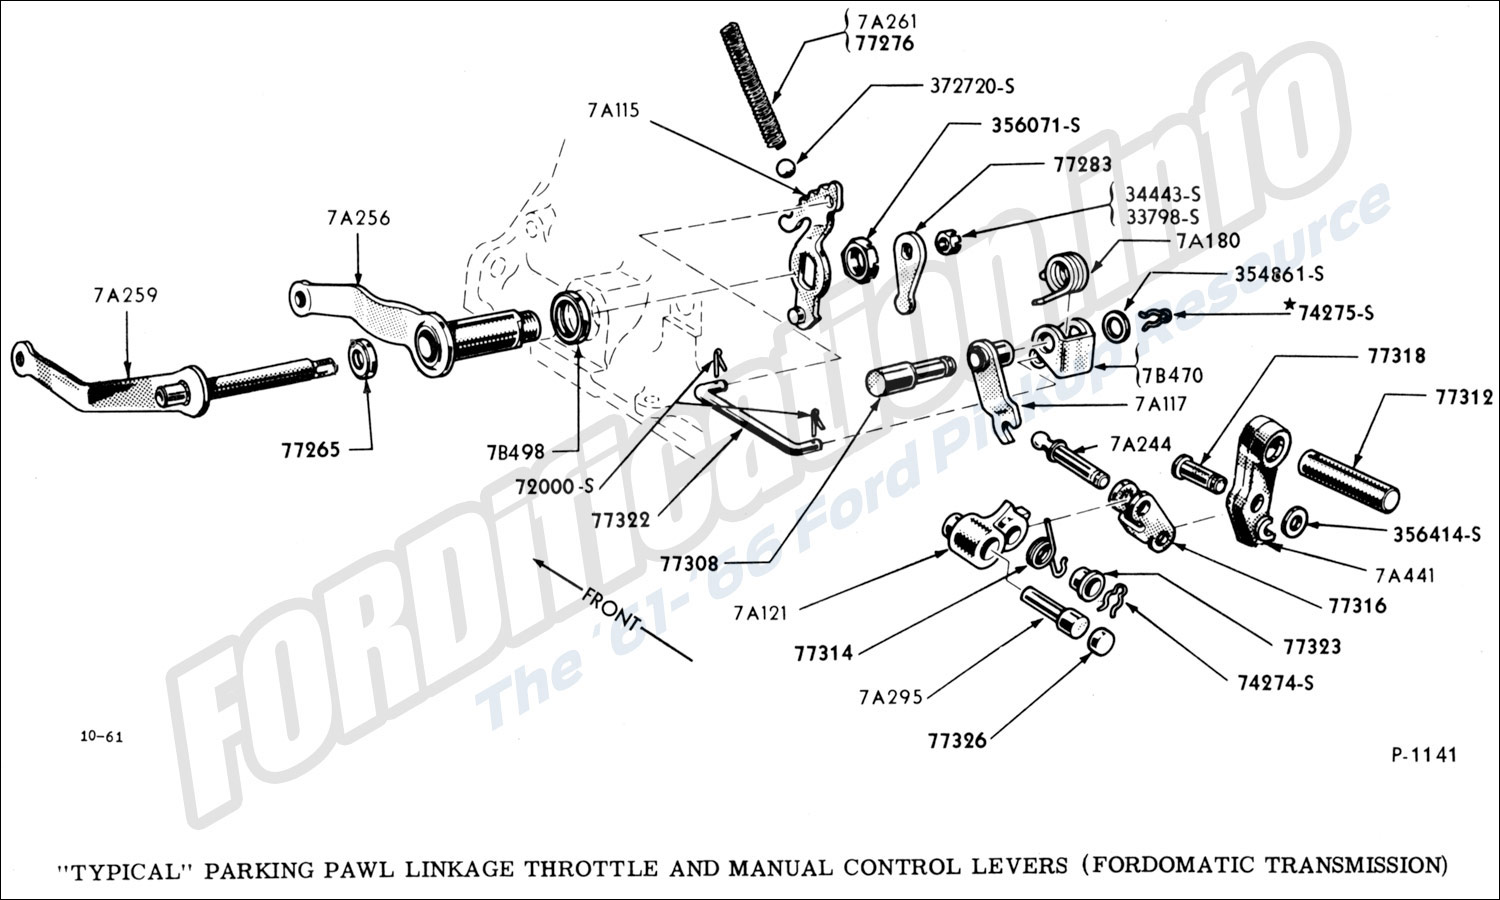 hight resolution of  typical parking pawl linkage throttle and manual control levers fordomatic transmission